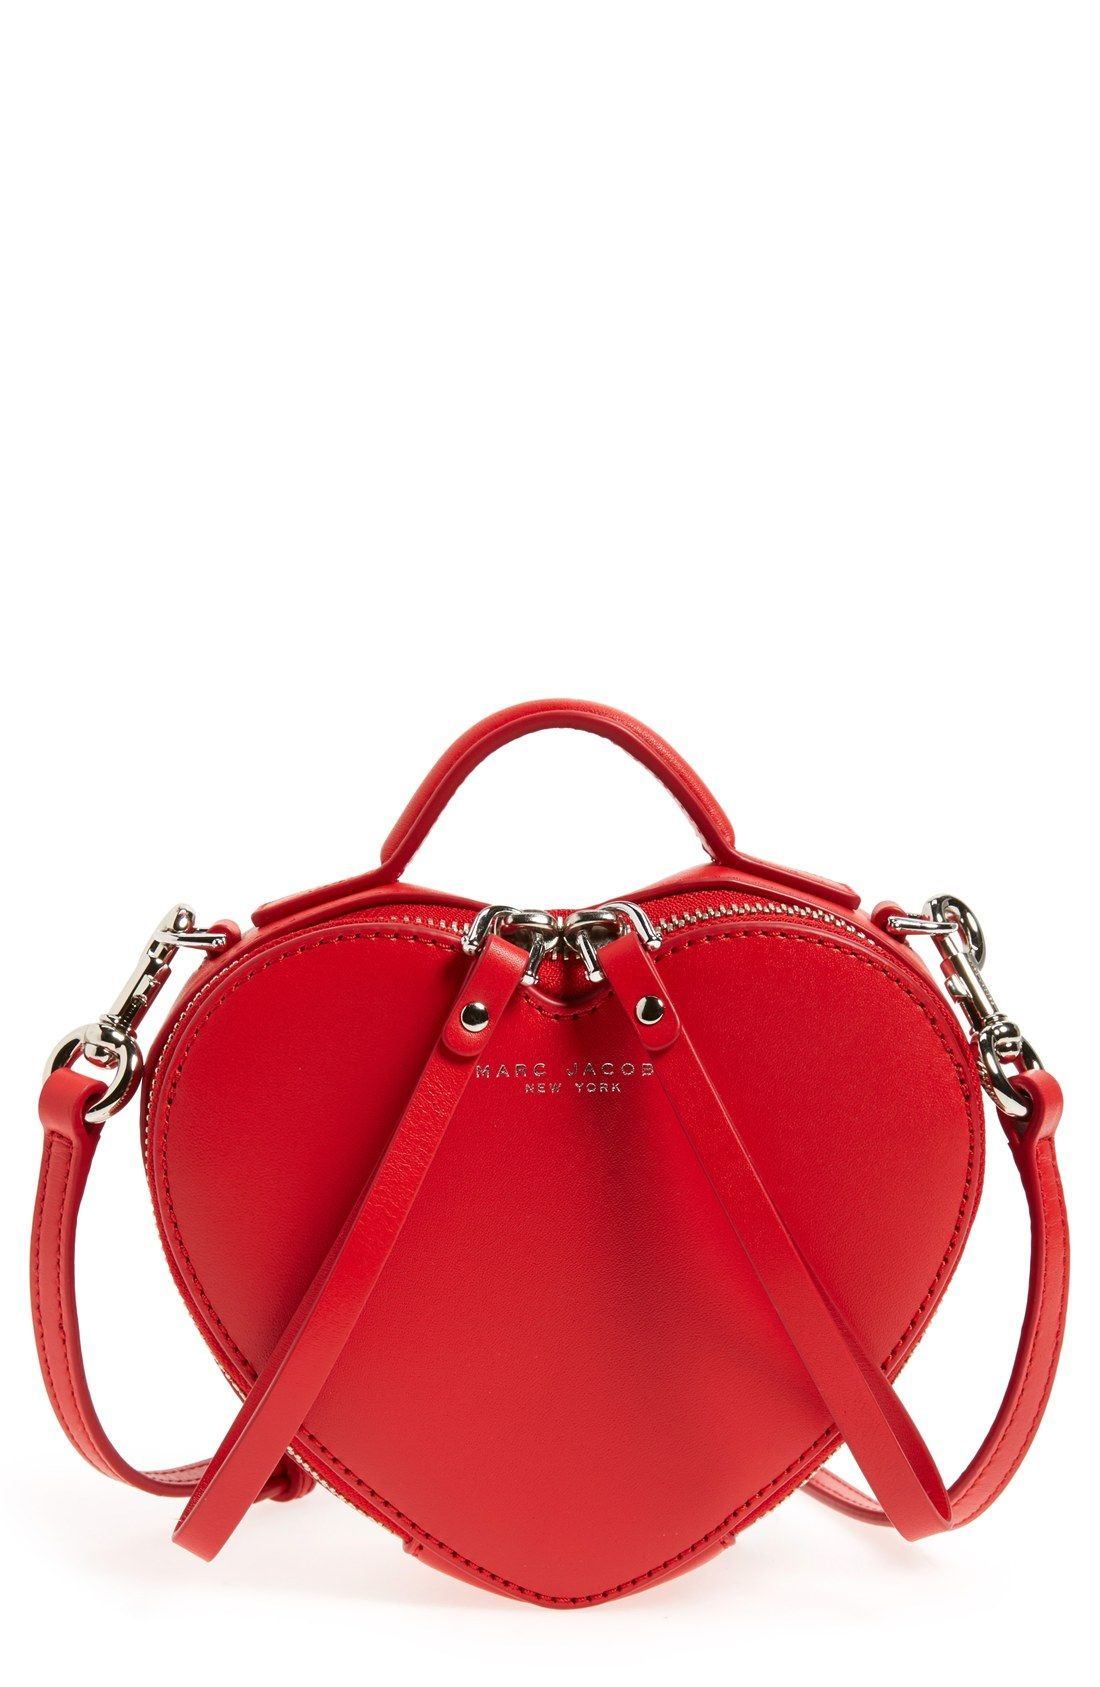 Marc Jacobs Heart Crossbody Bag